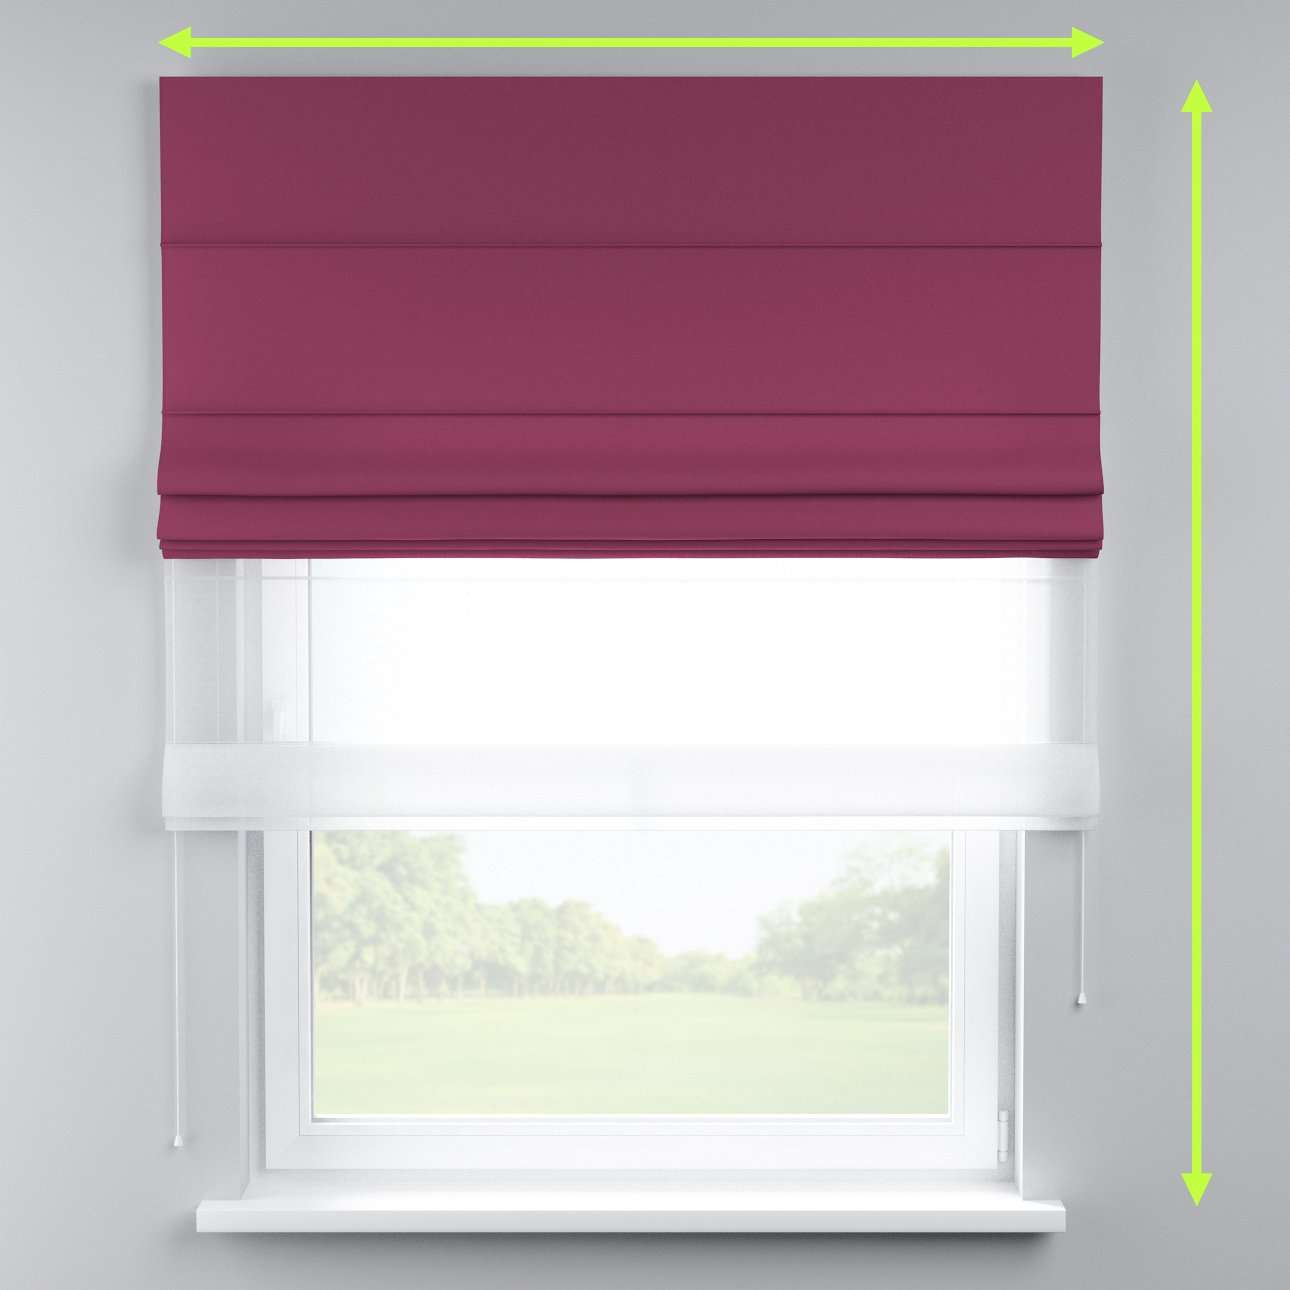 Voile and fabric roman blind (DUO II) in collection Cotton Panama, fabric: 702-32